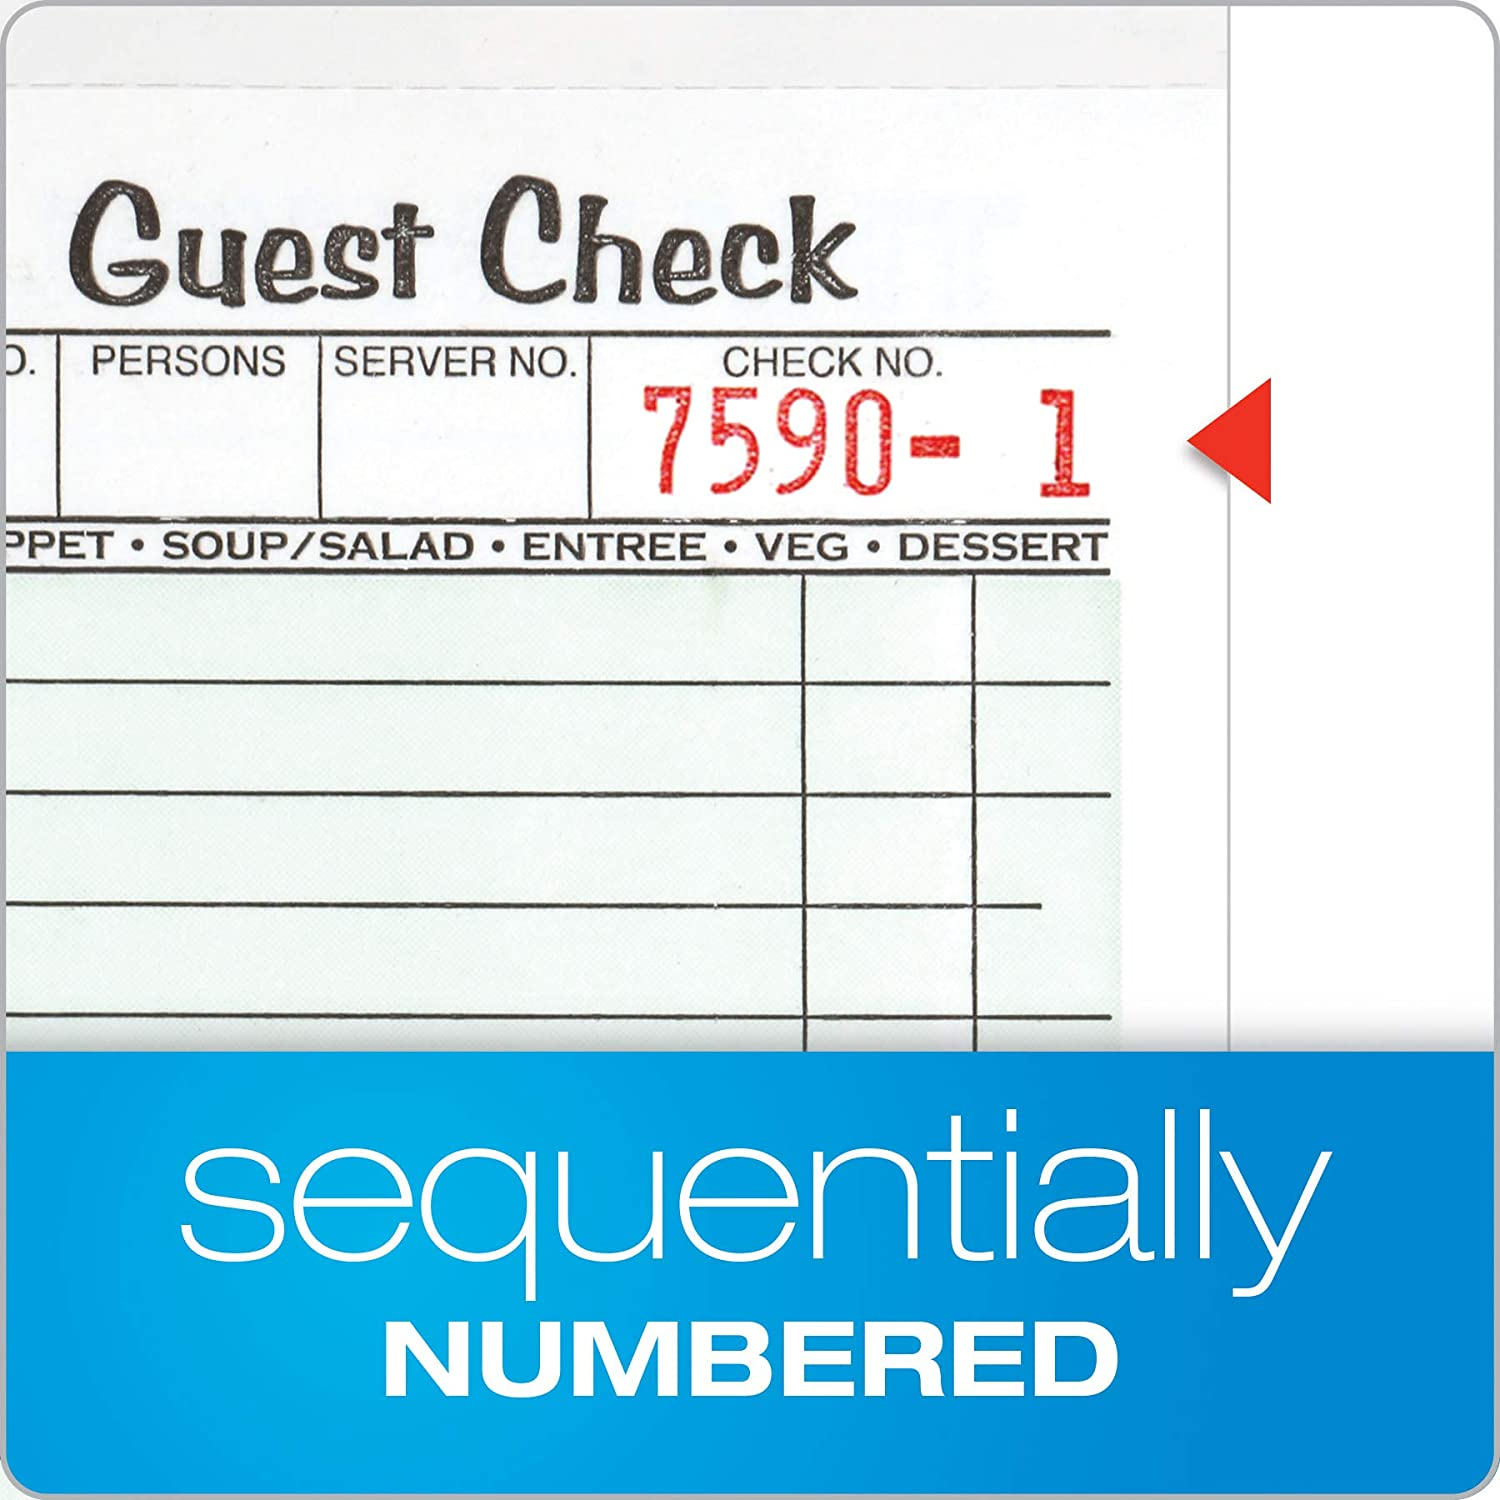 10 Pack Single Part 3-2//5 x 6-1//4 525SW Perforated Guest Receipt 50 Sheets per Pad Adams Guest Check Pads